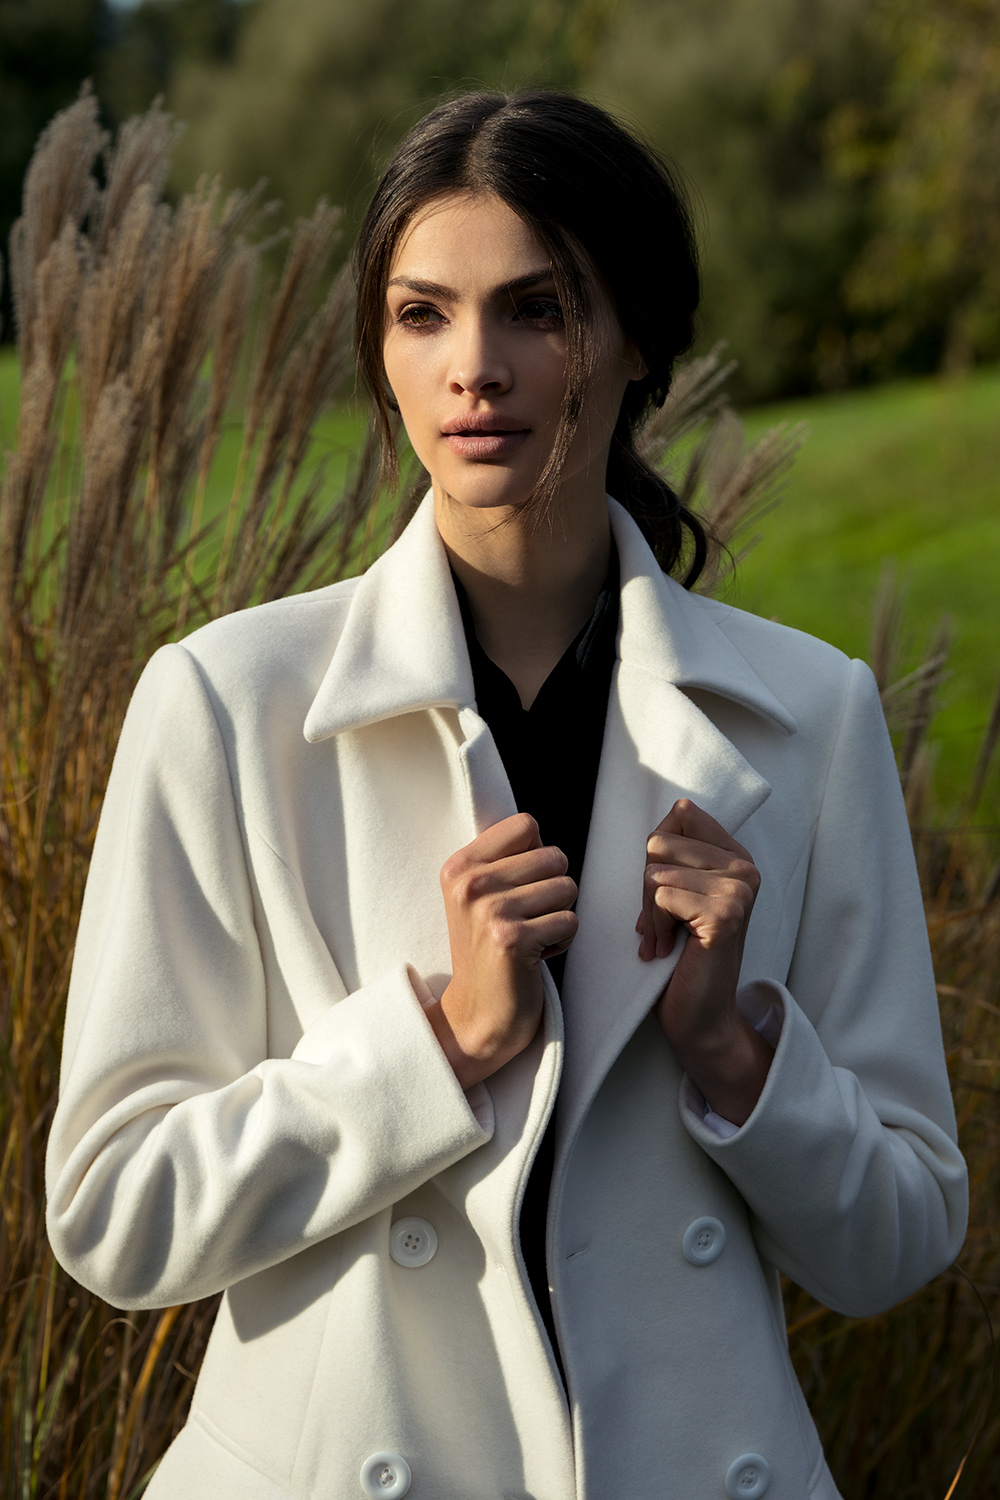 Coats - We provide a range of luxury jackets for summer and winter wear and offer a unique bespoke tailoring service.Cashmere, Silk and Cotton blends